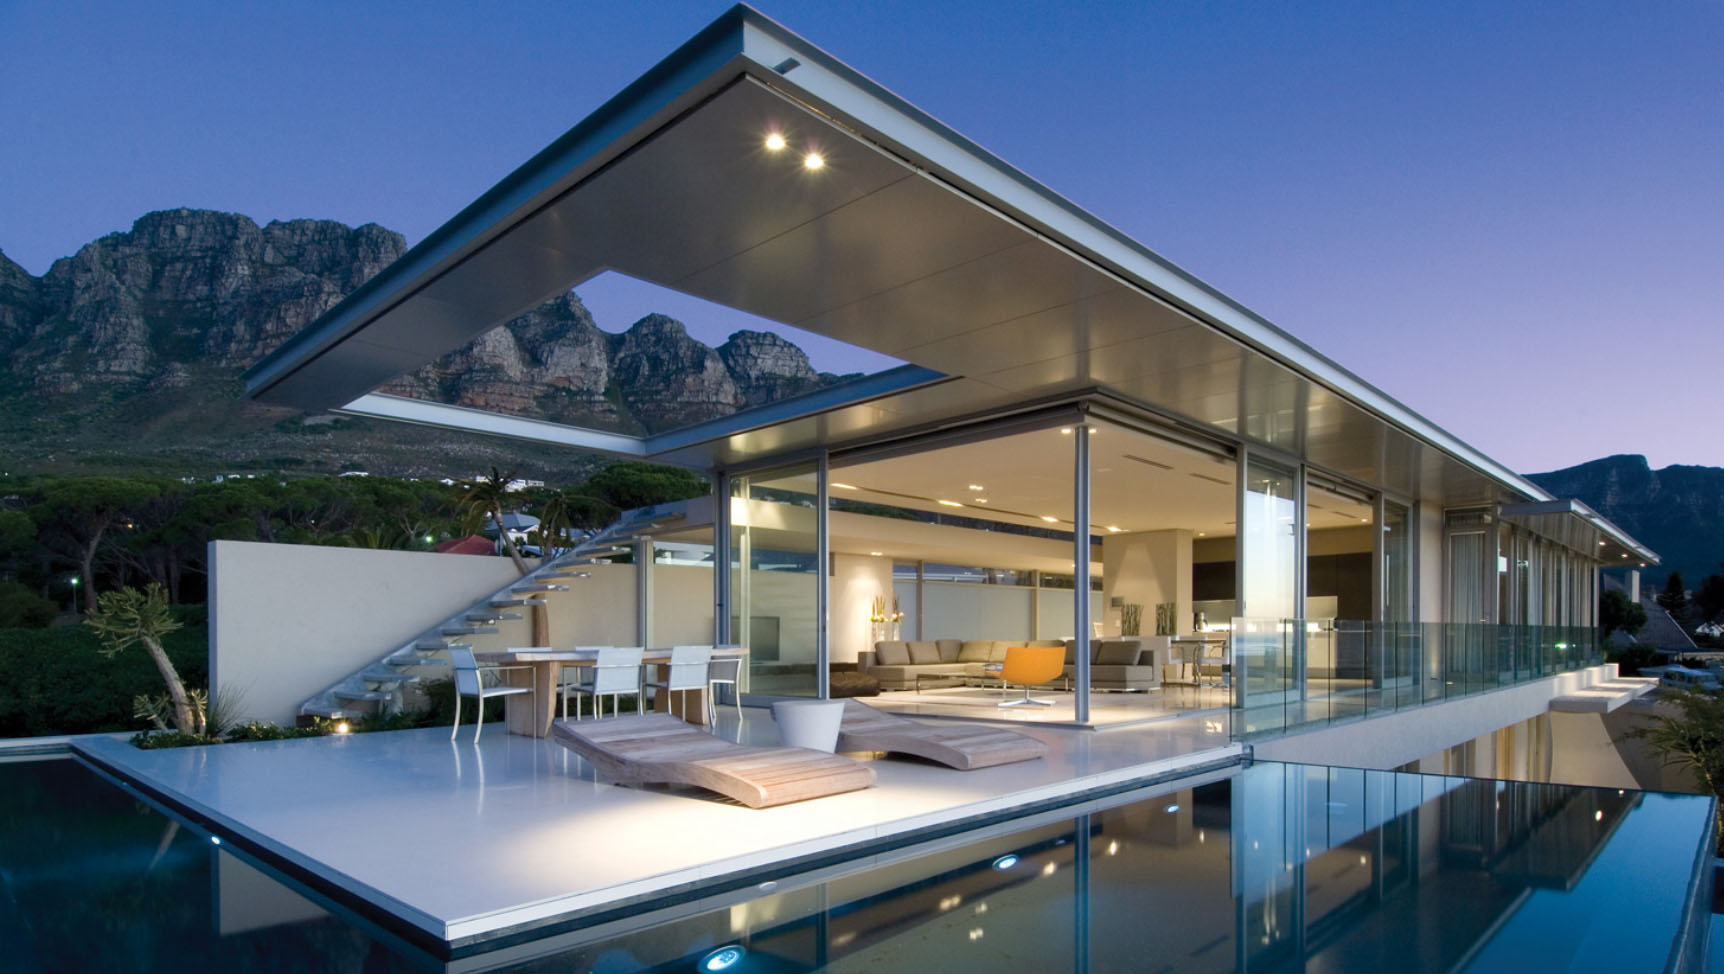 Minimalist Ocean View Home In South Africa | iDesignArch | Interior ...